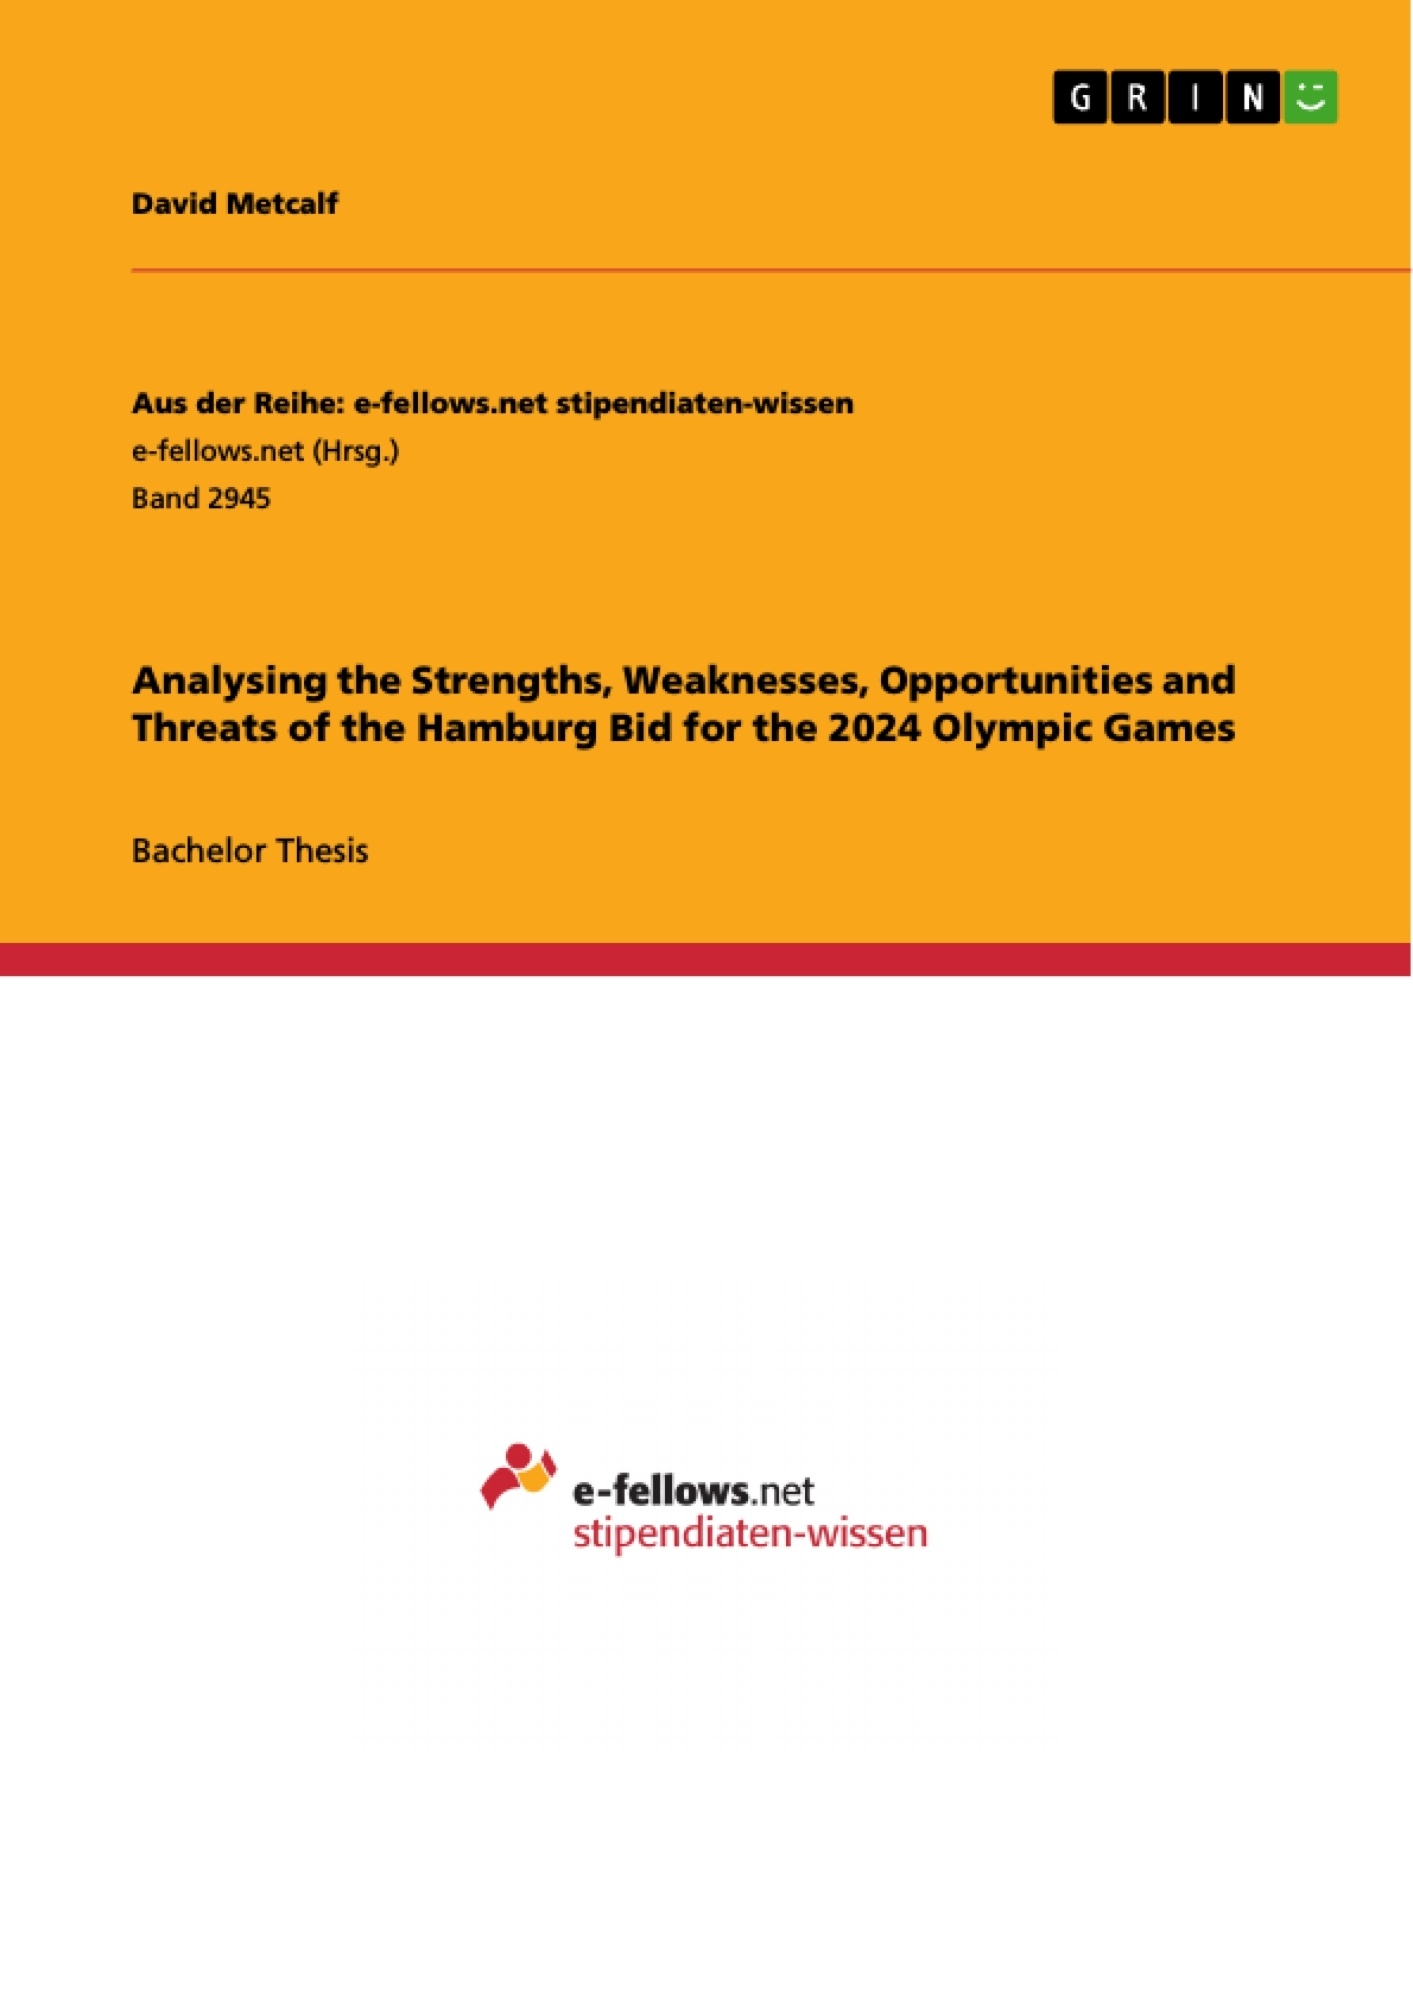 Title: Analysing the Strengths, Weaknesses, Opportunities and Threats of the Hamburg Bid for the 2024 Olympic Games